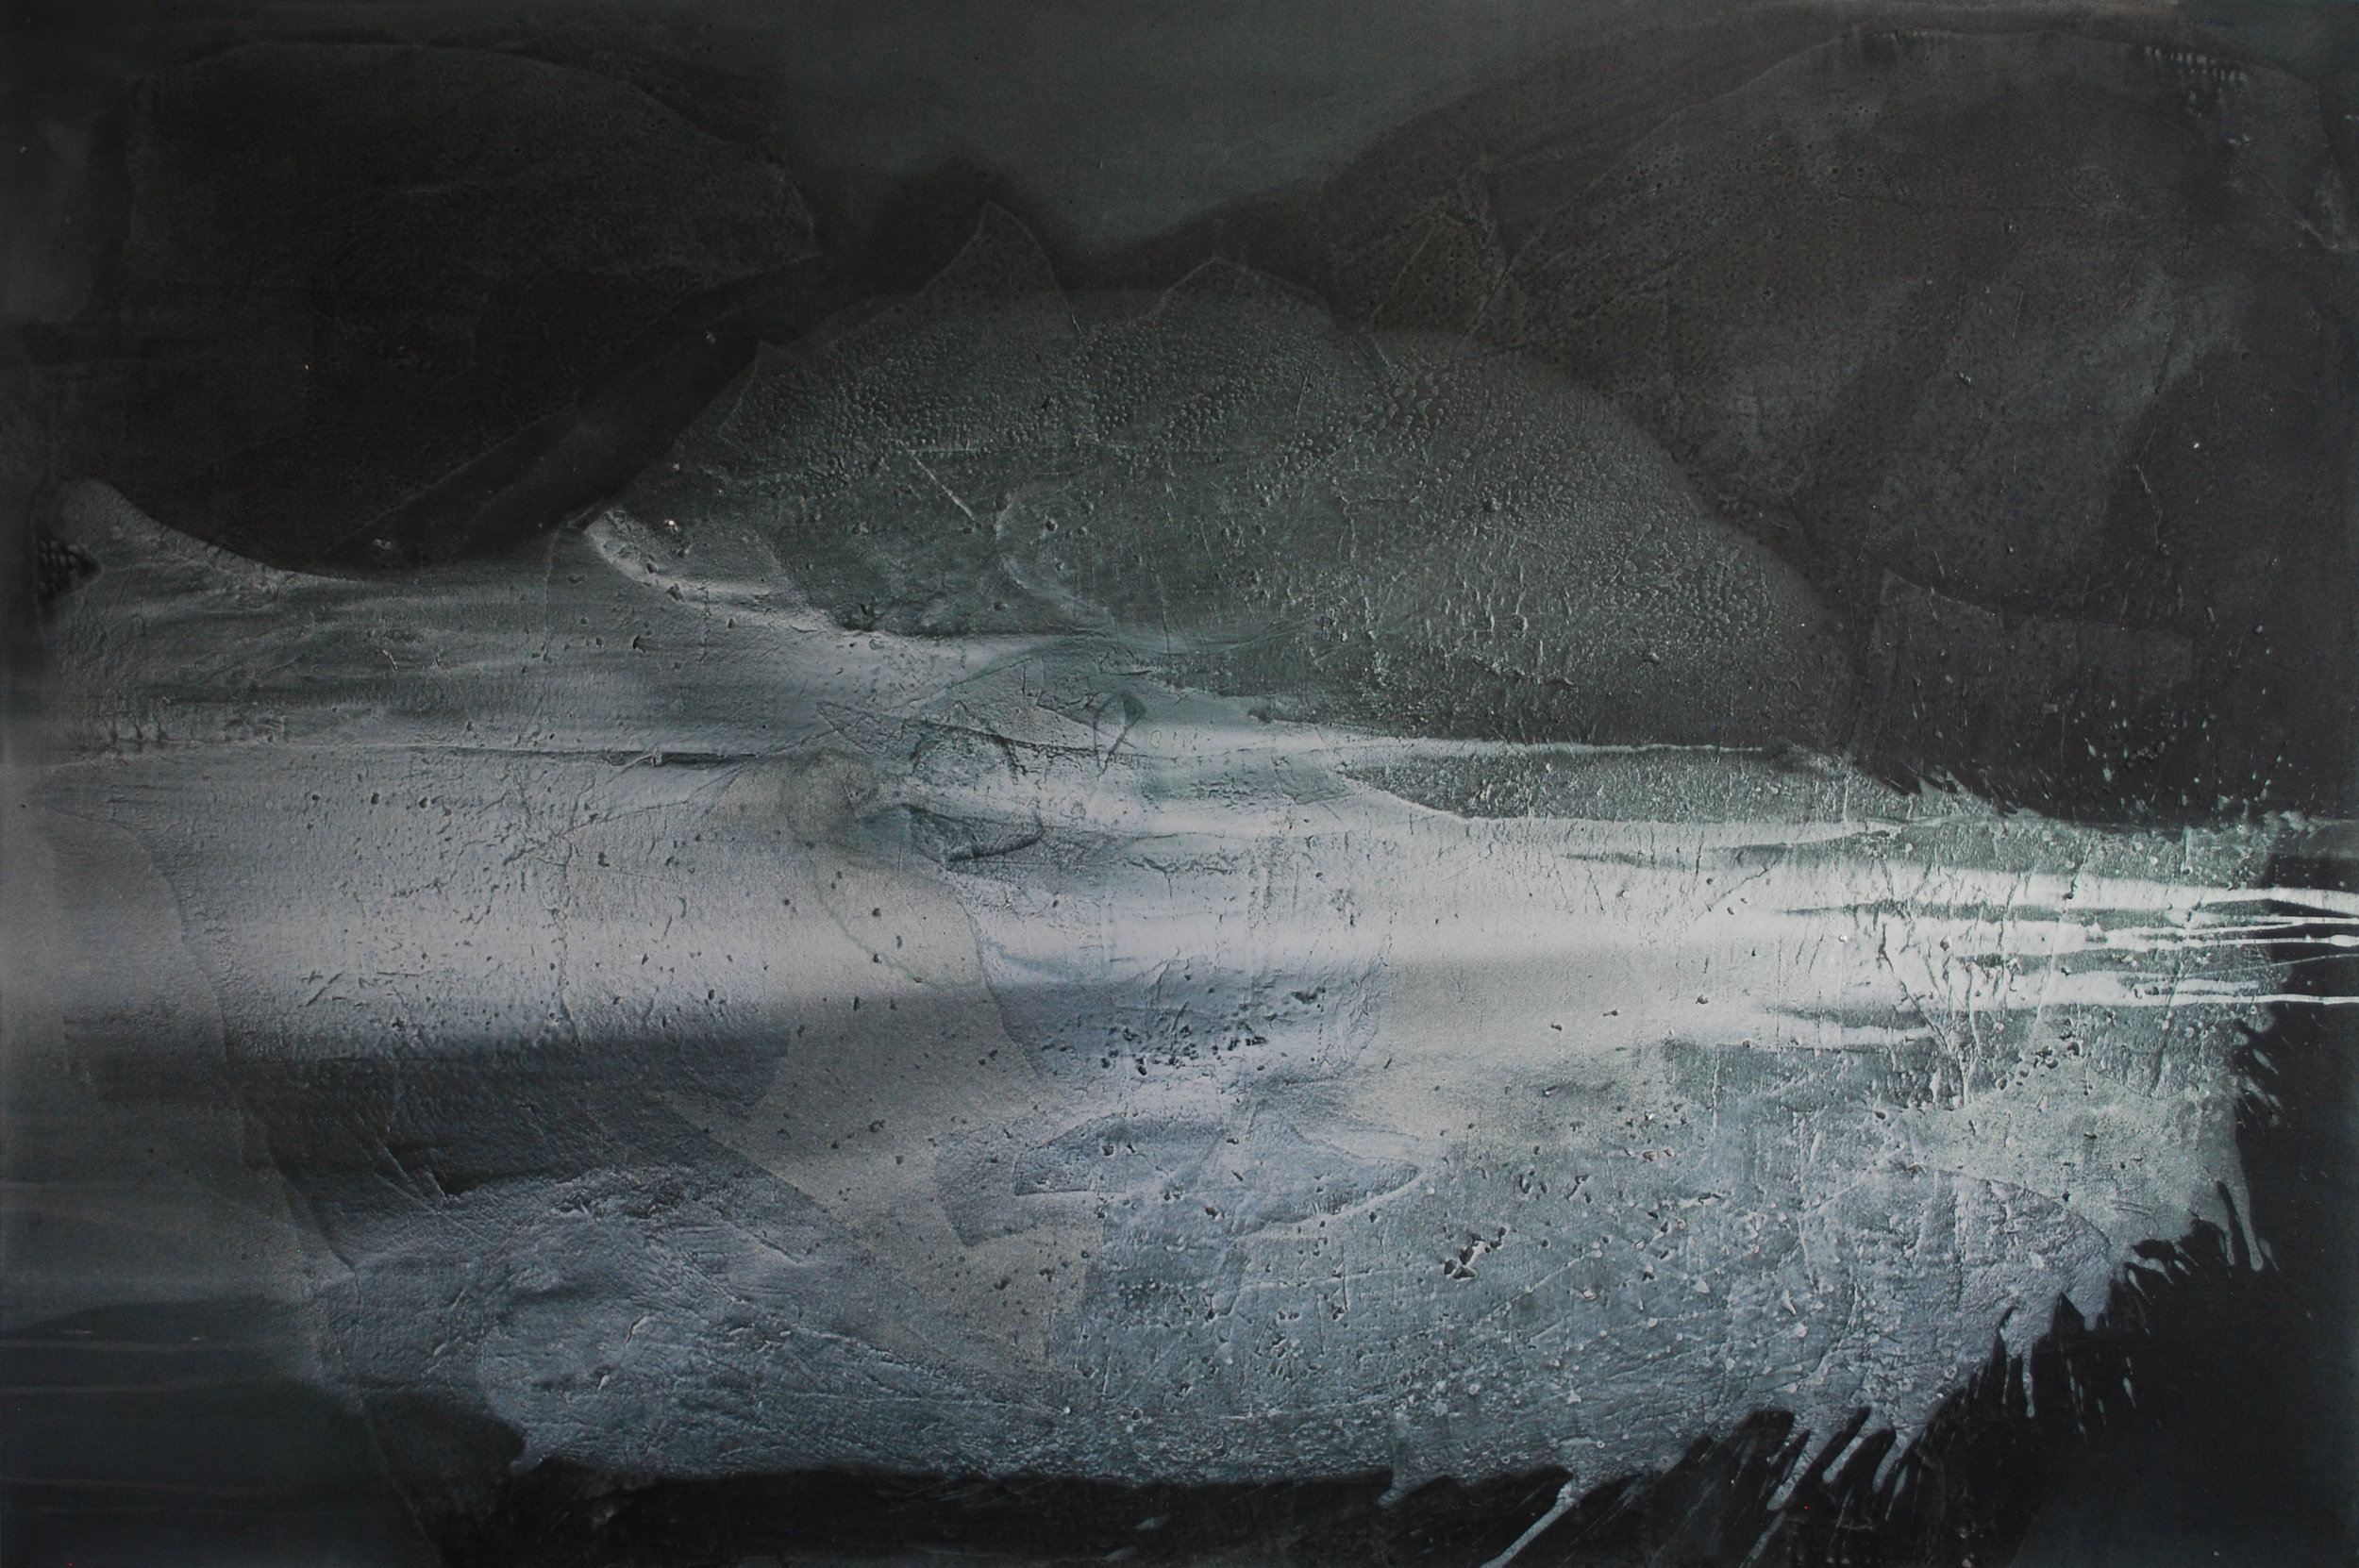 SoHyun Bae, Jasper Lake II, 2014, rice-paper and pure pigment on canvas, 72 x 108 inches